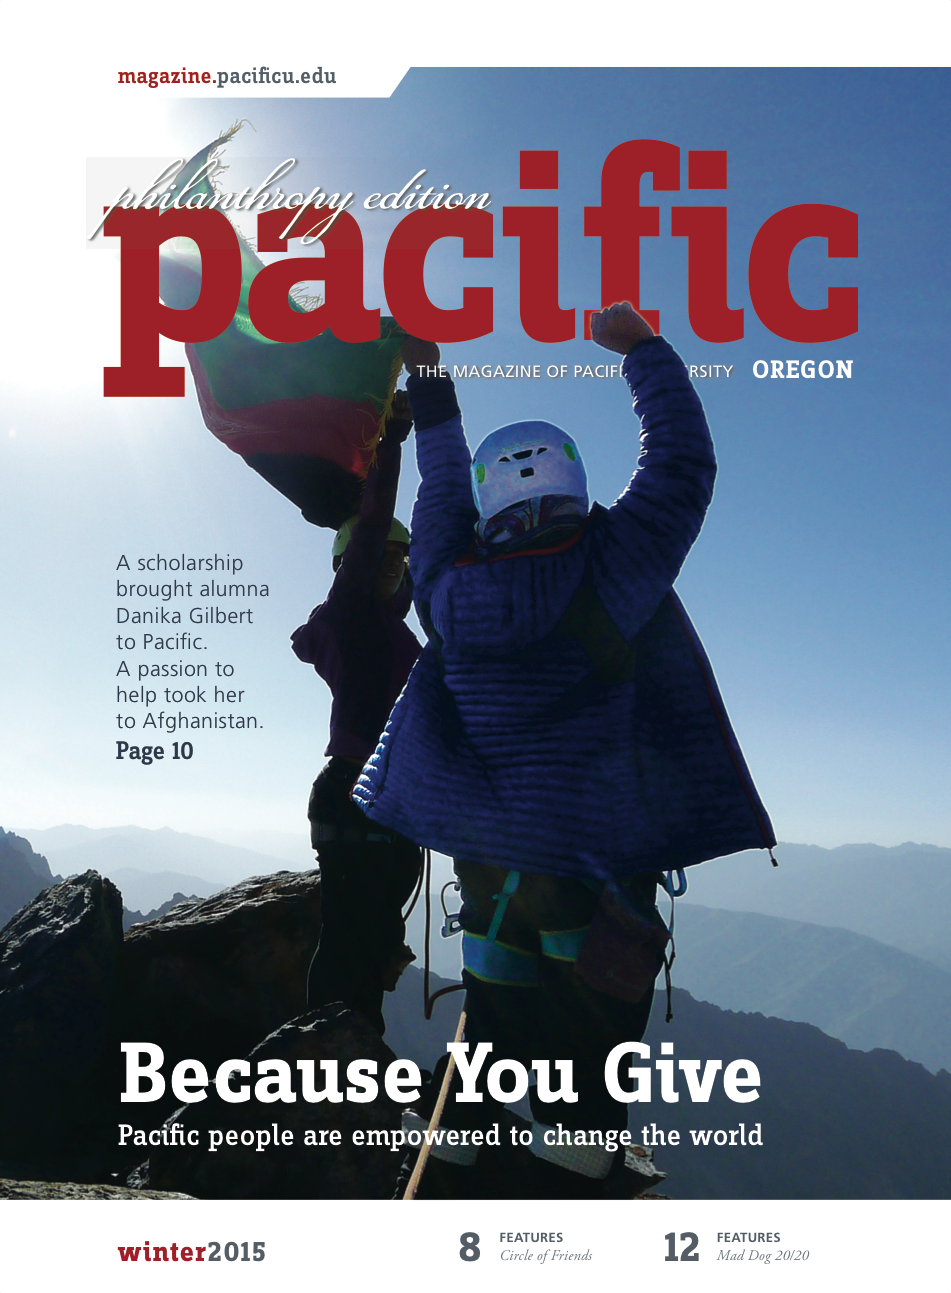 Winter 2015 Pacific Magazine cover